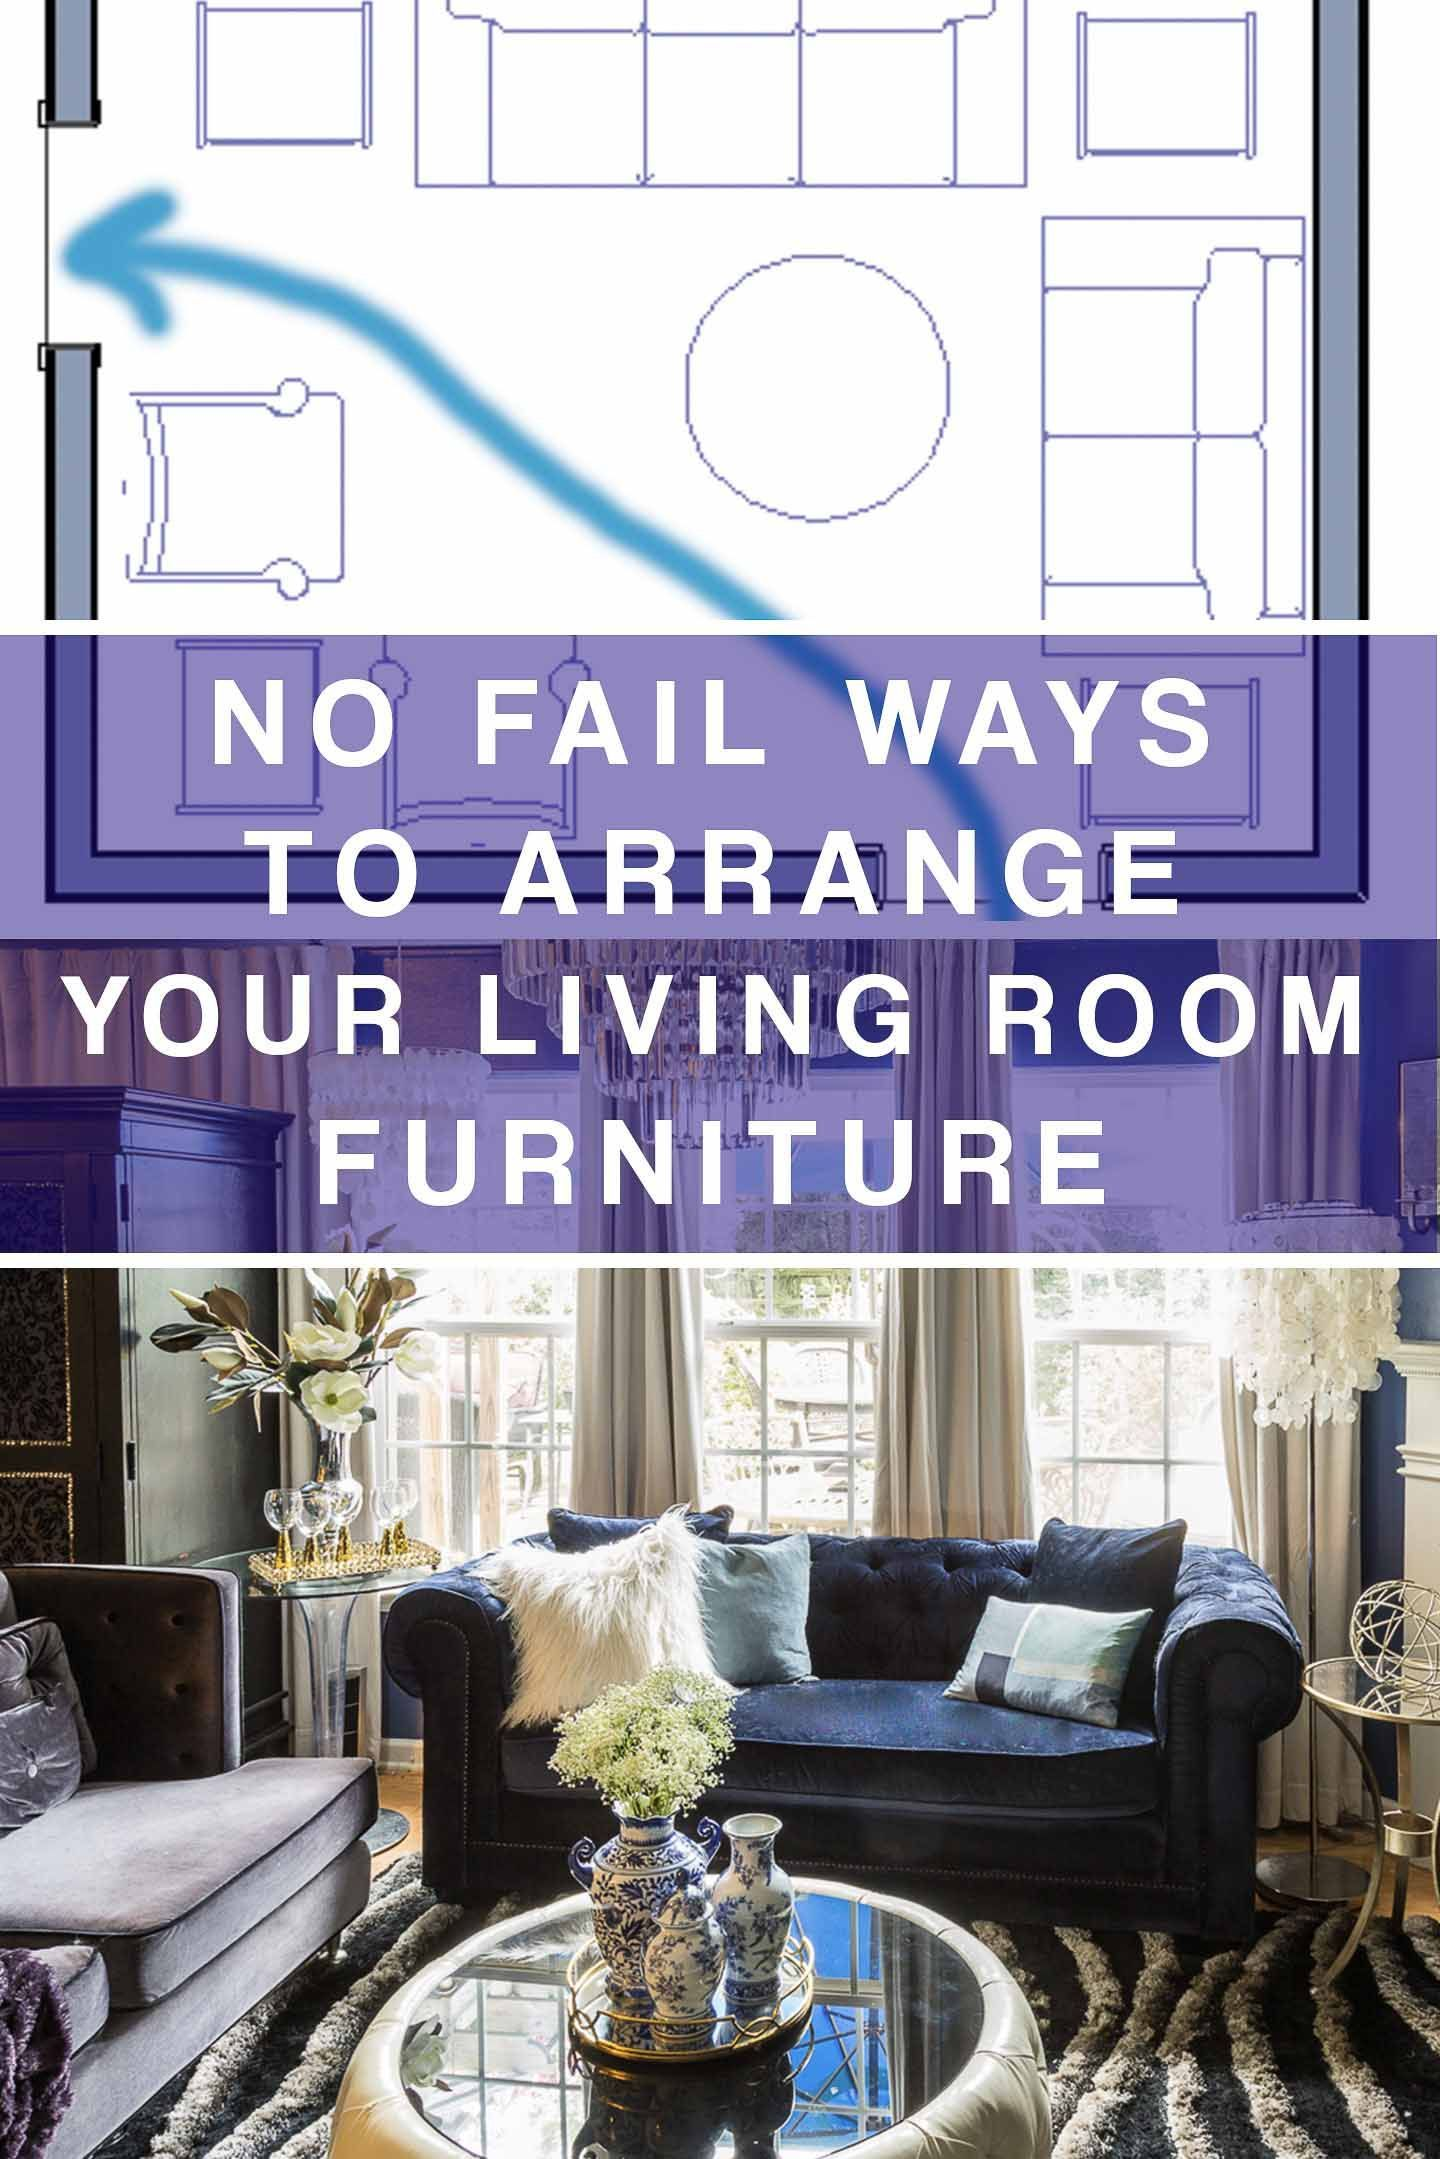 Living Room Layouts And Furniture Arrangement Tips Livingroom Layout Living Room Arrangements Room Layout #tv #arrangement #in #living #room